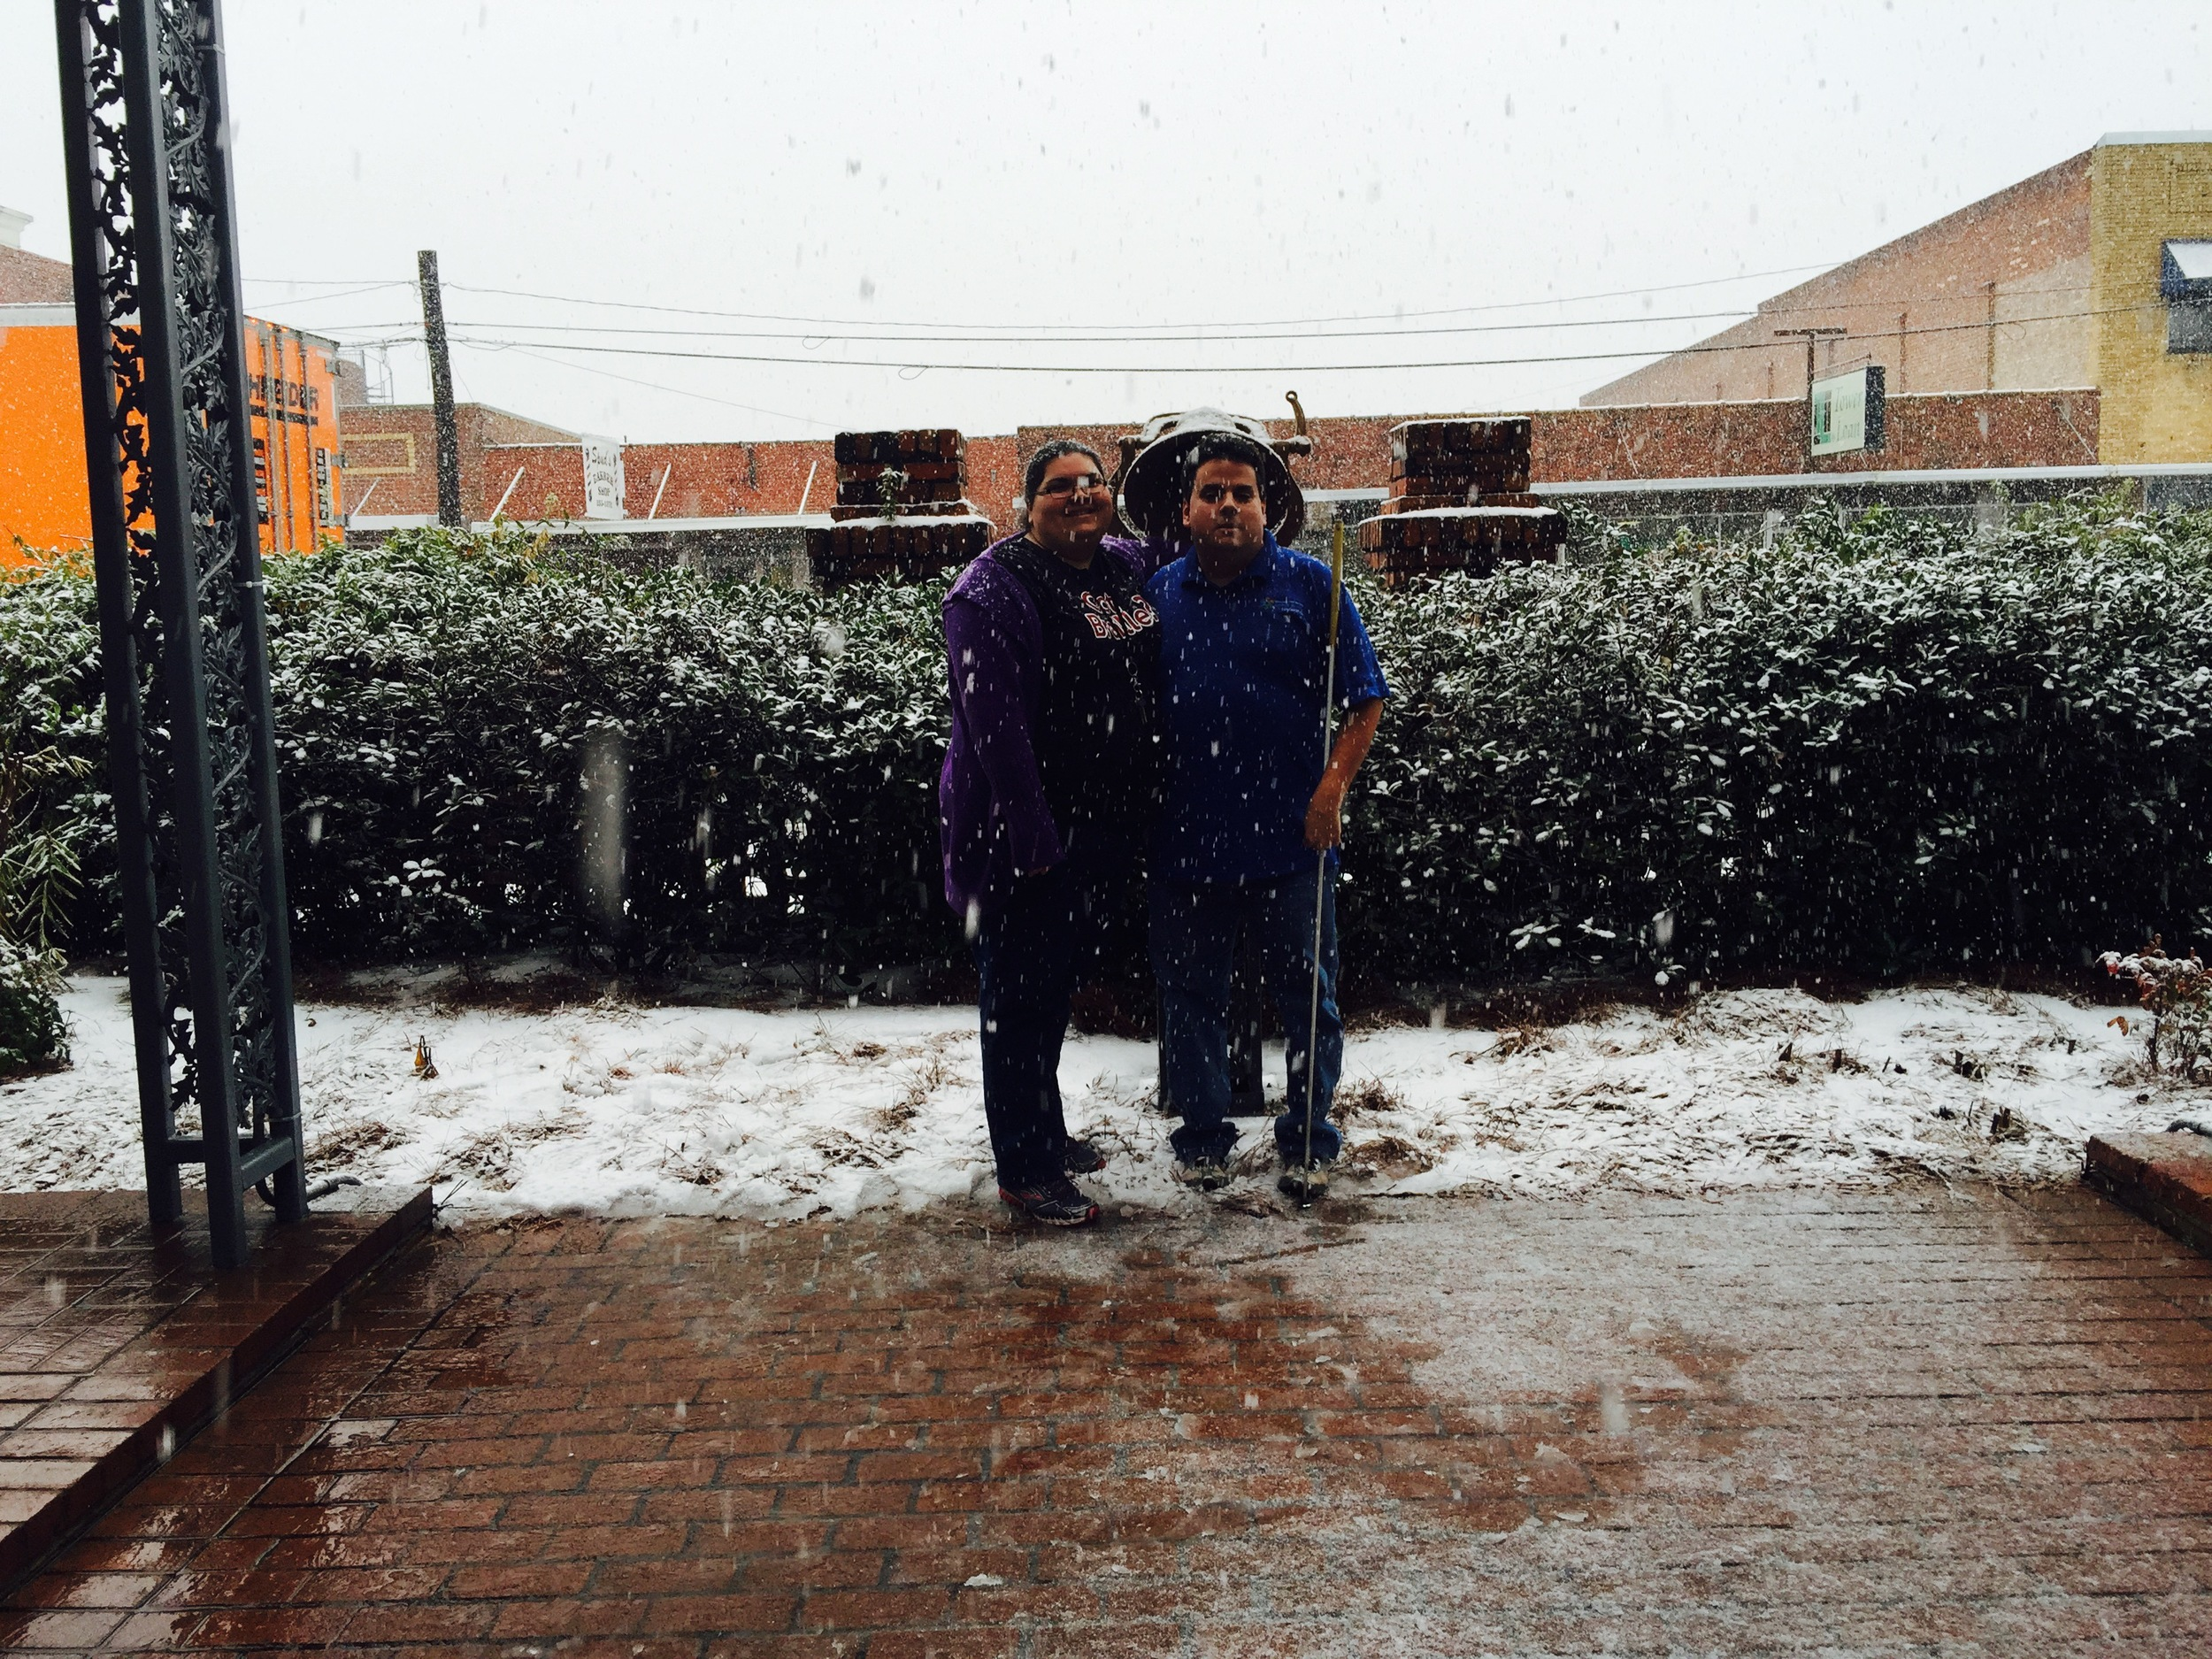 Eric and Krystal in the snow by the freedom bell